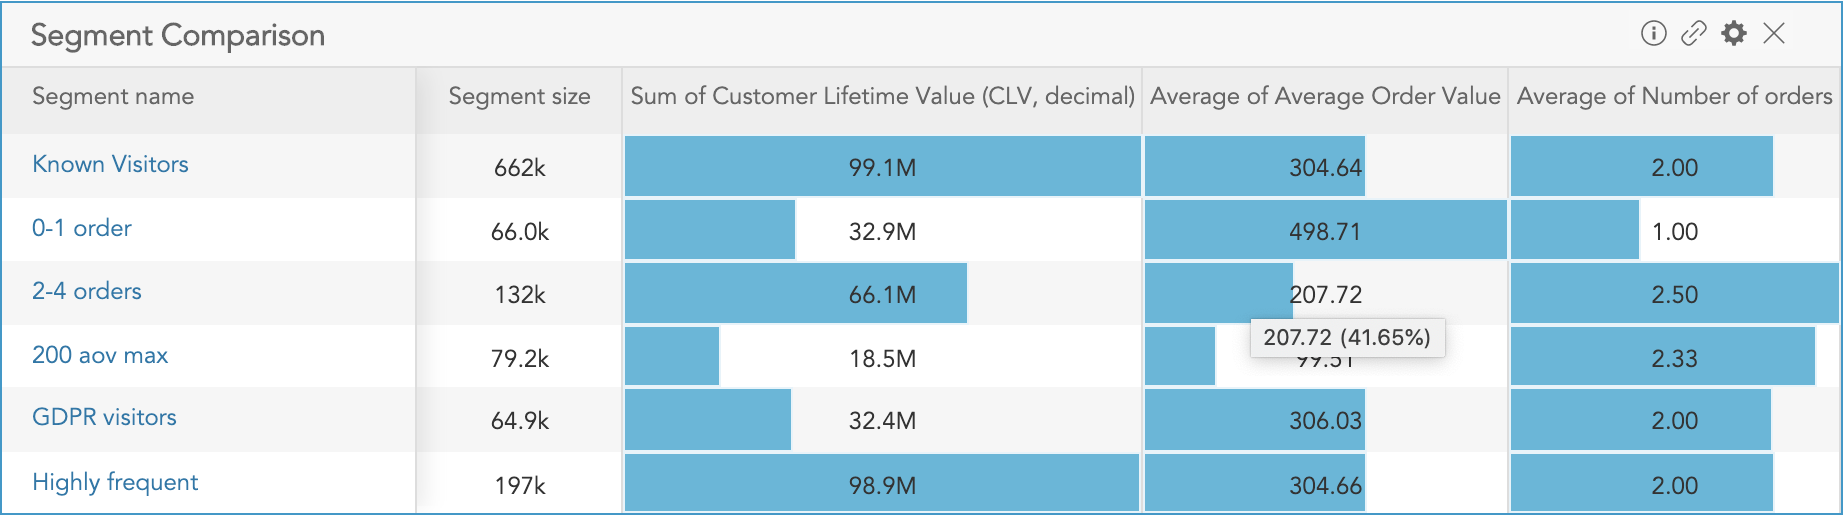 How to compare customer profile values across customer segments using the Segment Comparison Insight in BlueConic